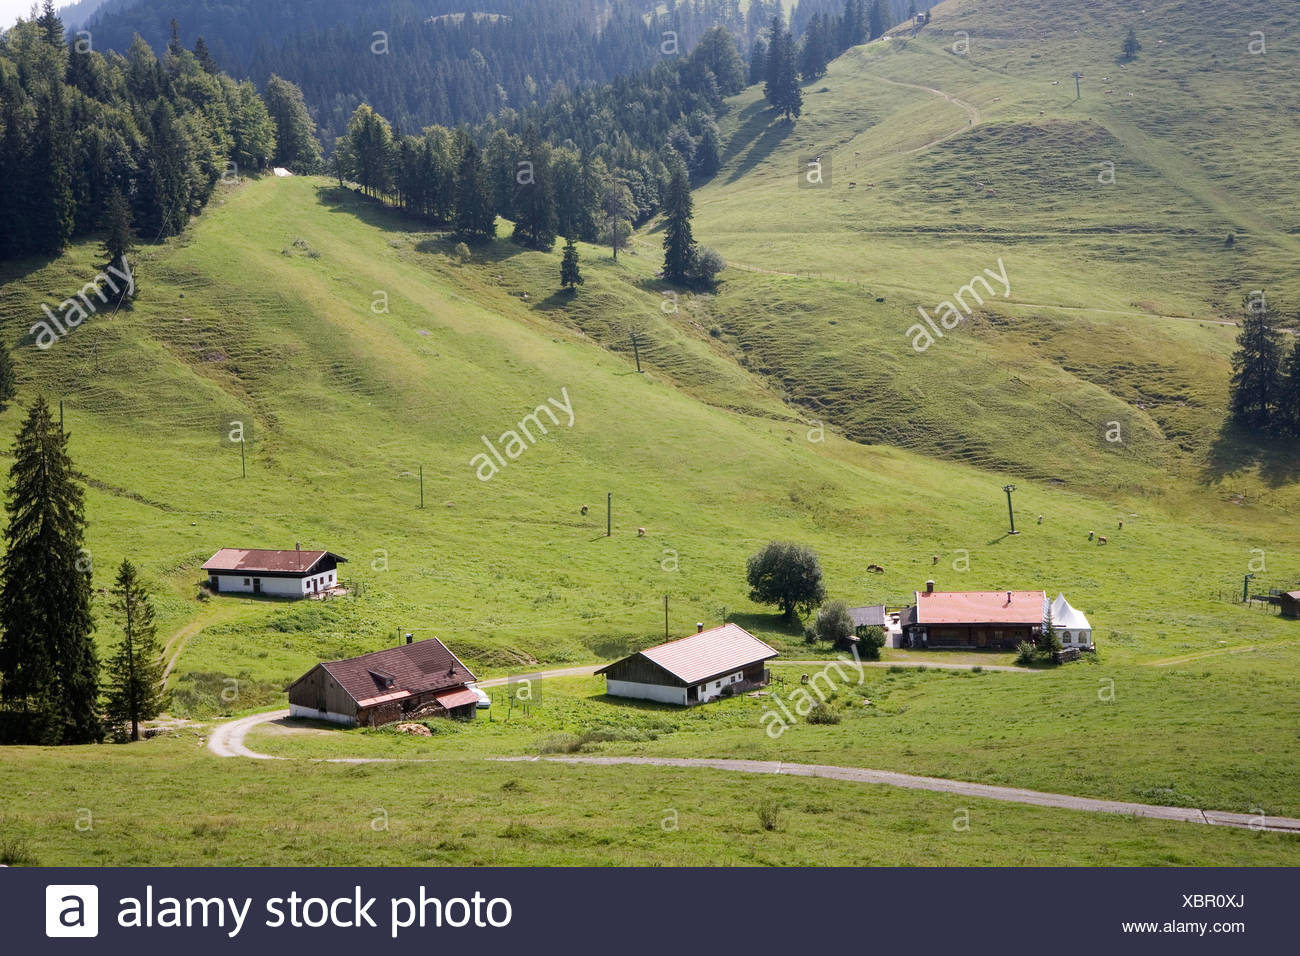 Germany, Bavaria, Bayrischzell, Houses in the valley - Stock Image